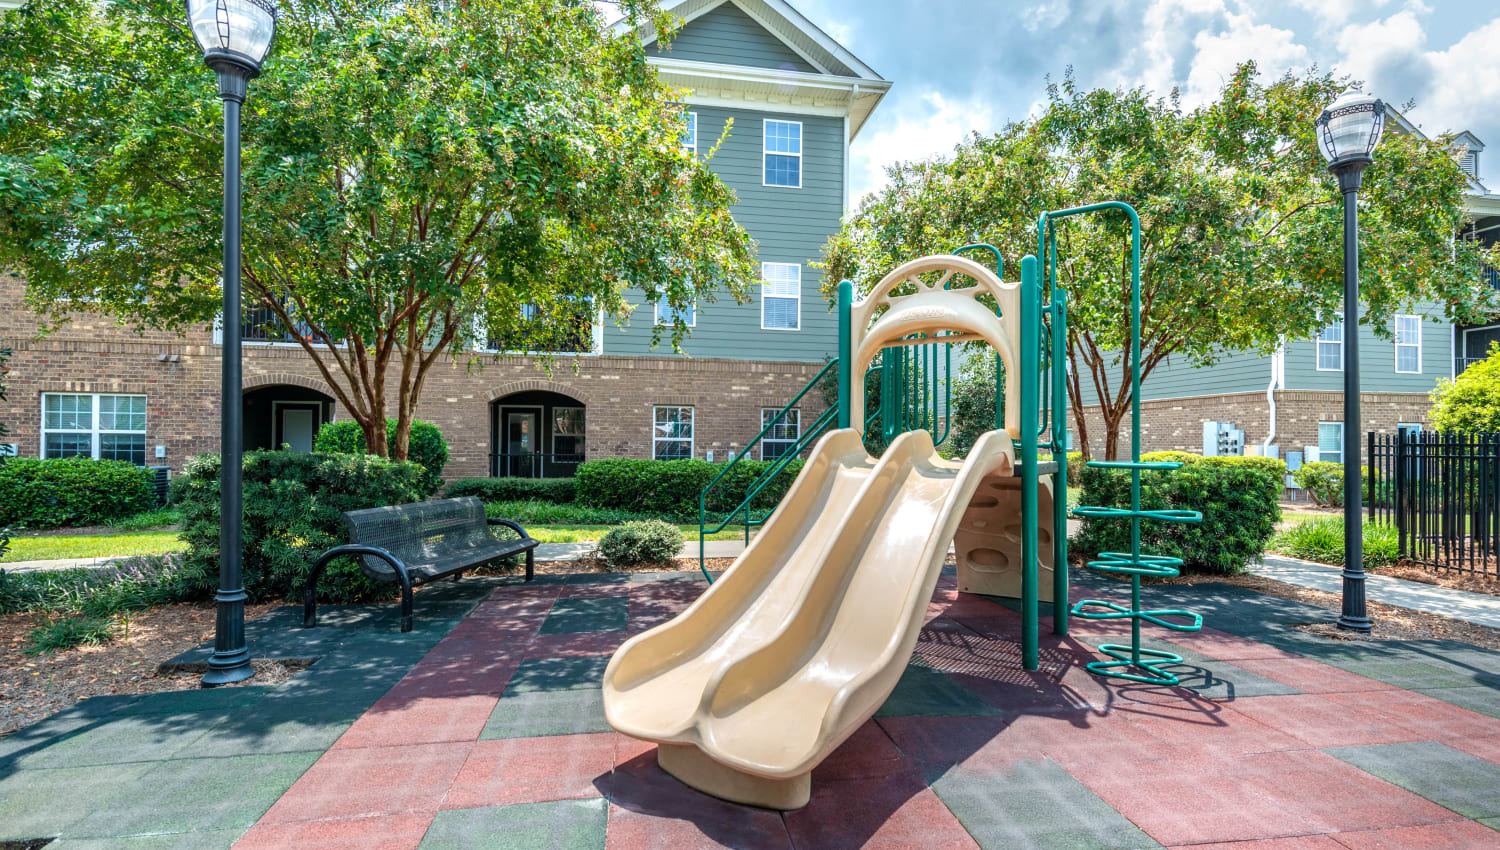 Slide and more at the onsite children's playground at Olympus Carrington in Pooler, Georgia